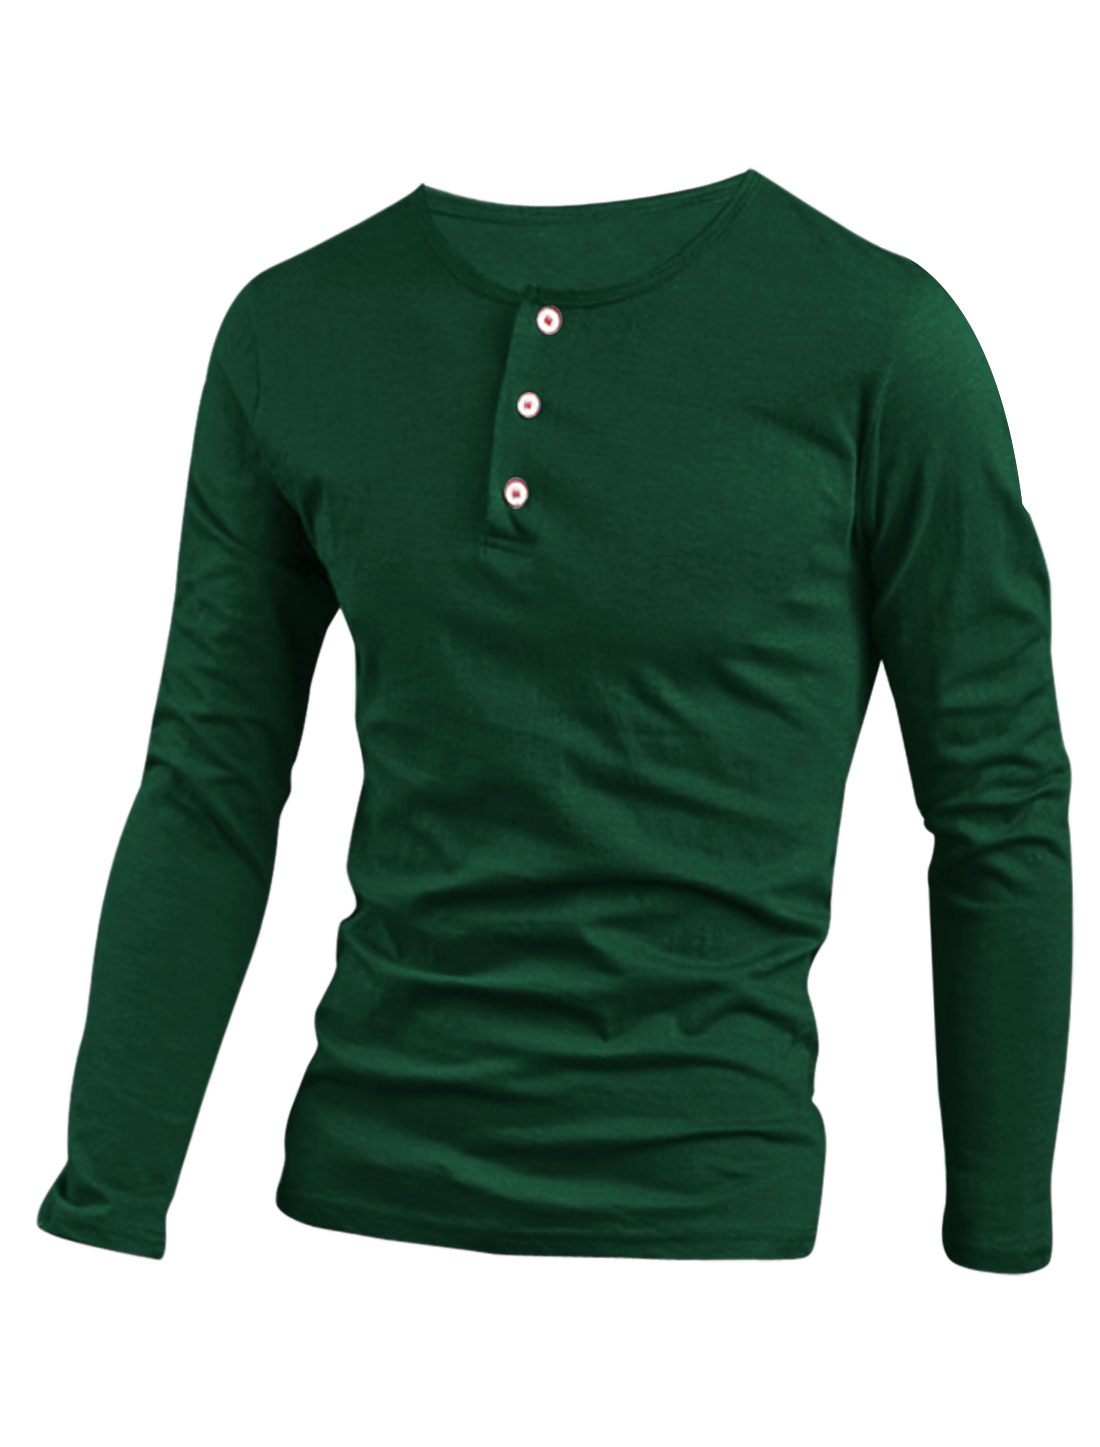 Men Stretchy 1/4 Placket Design Henley Shirt Dark Green M